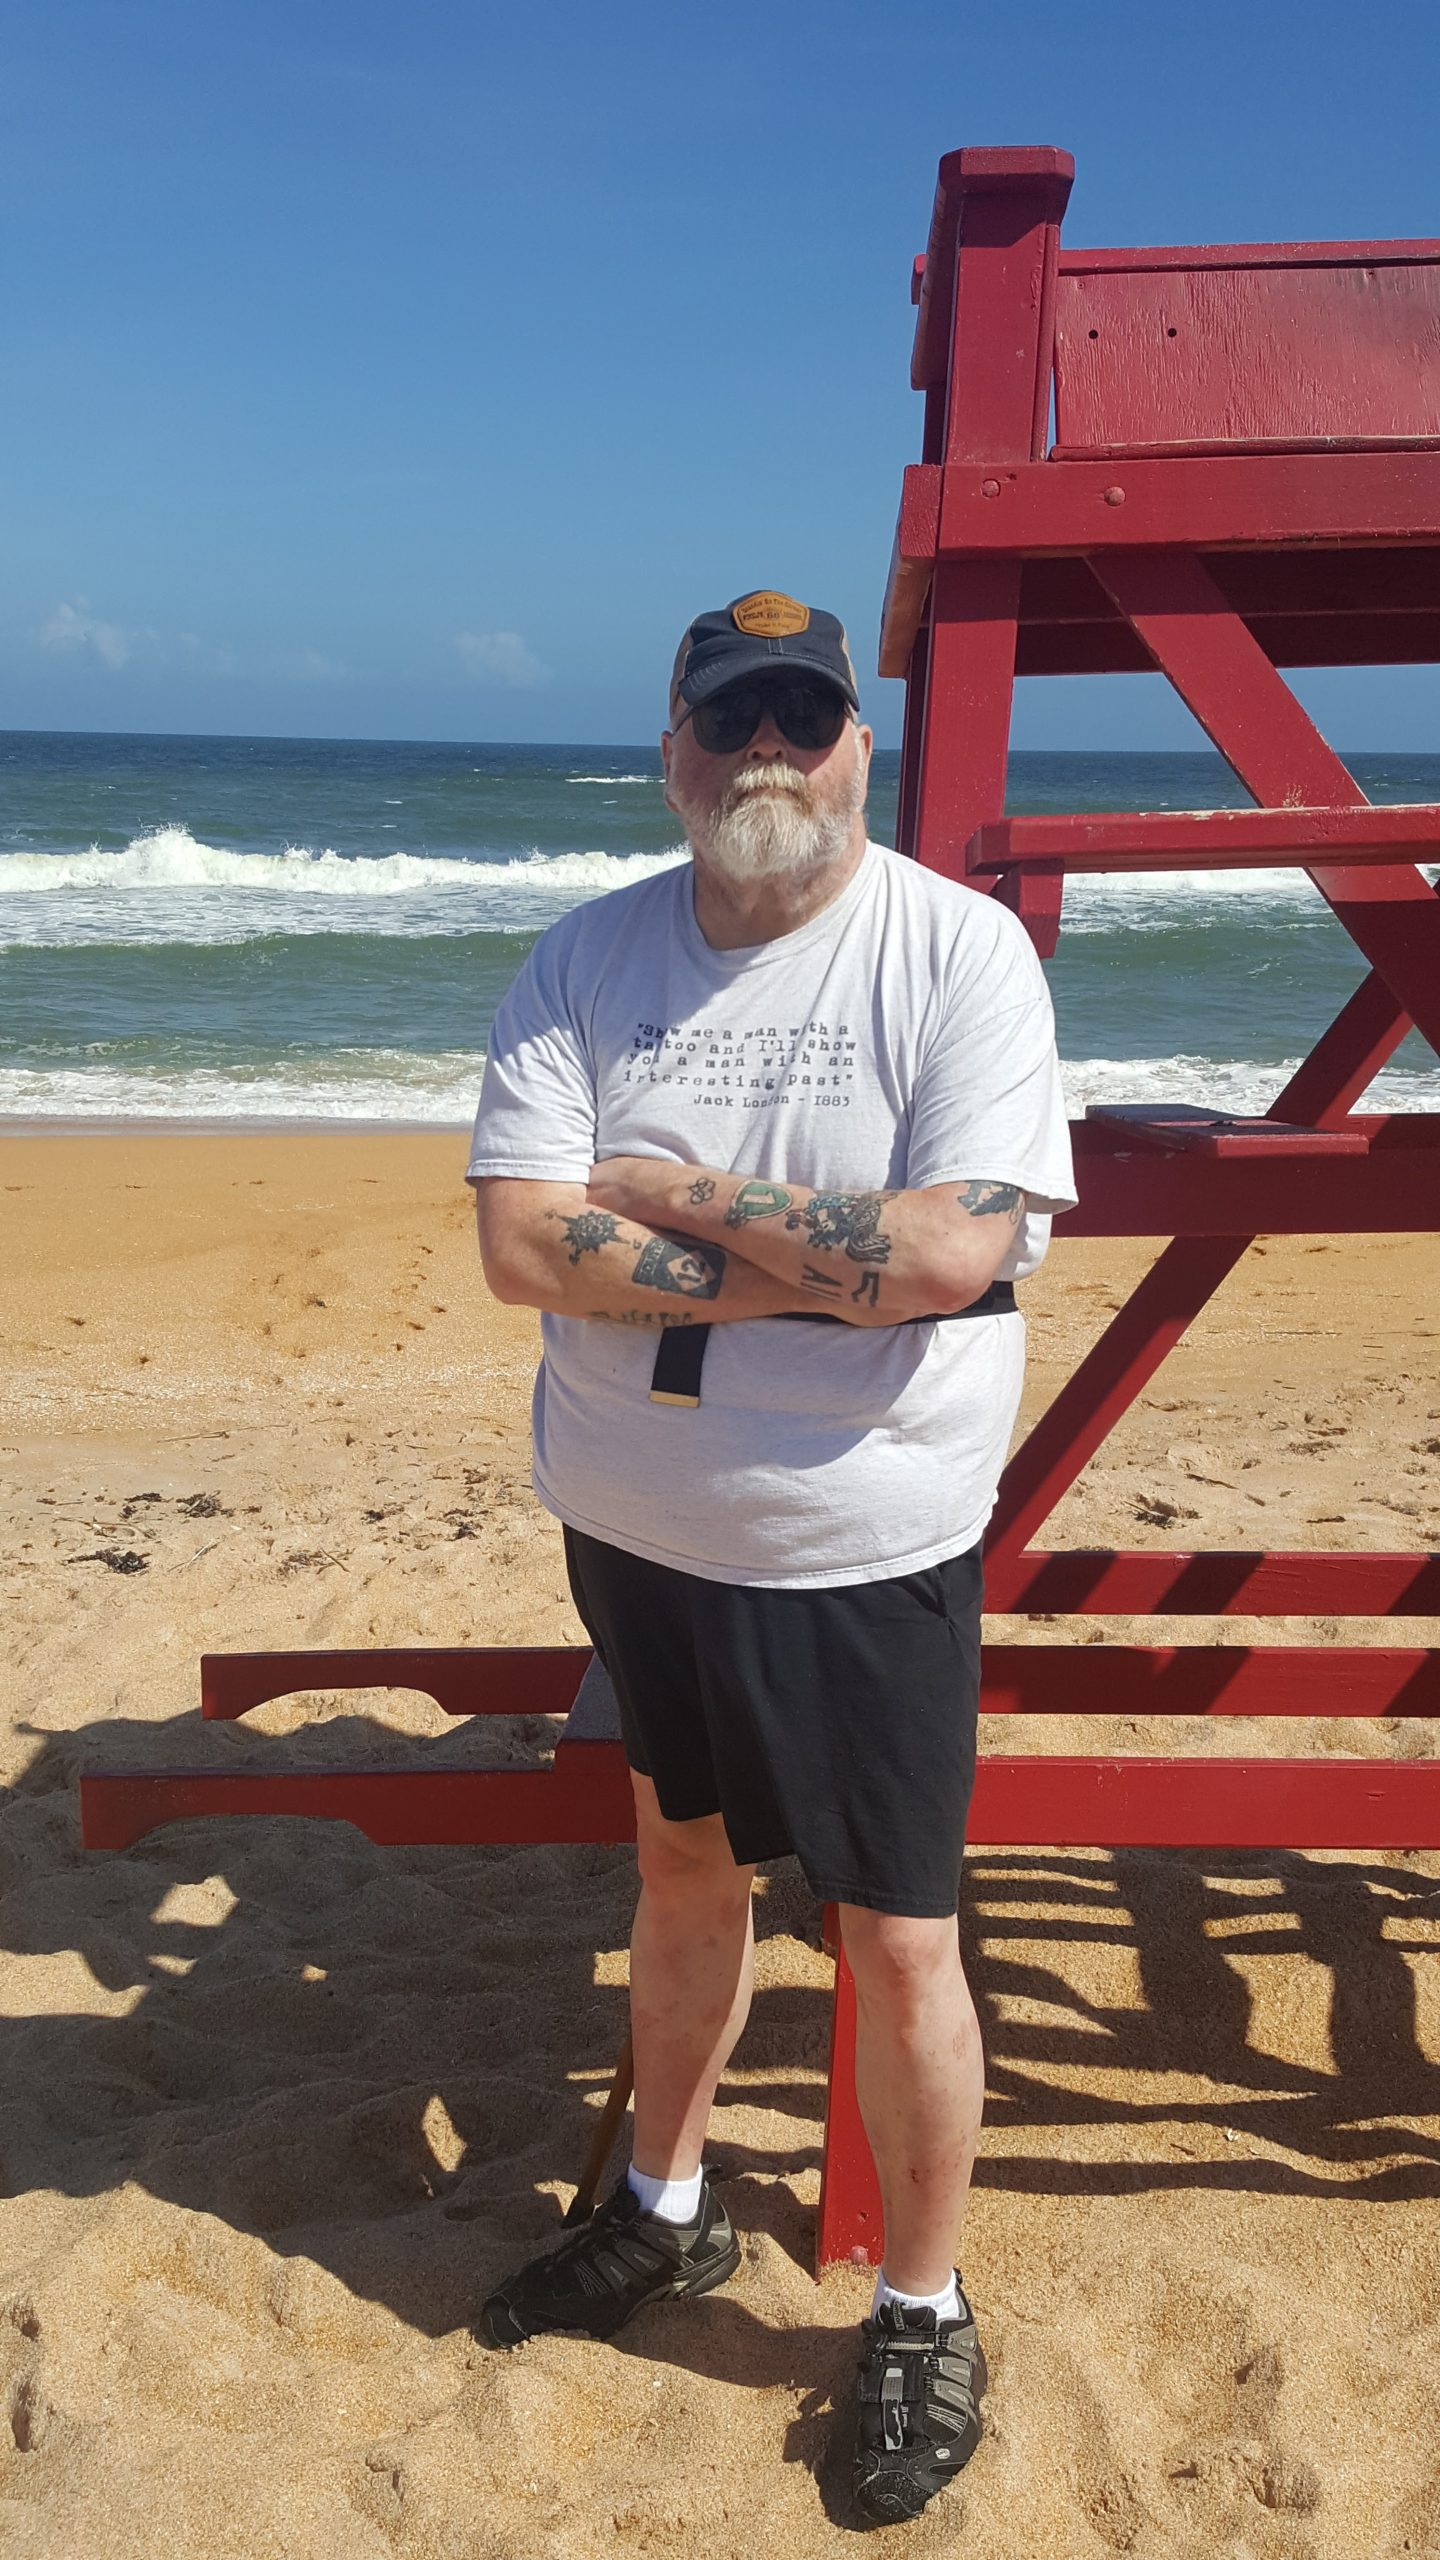 Danny Stines at the beach